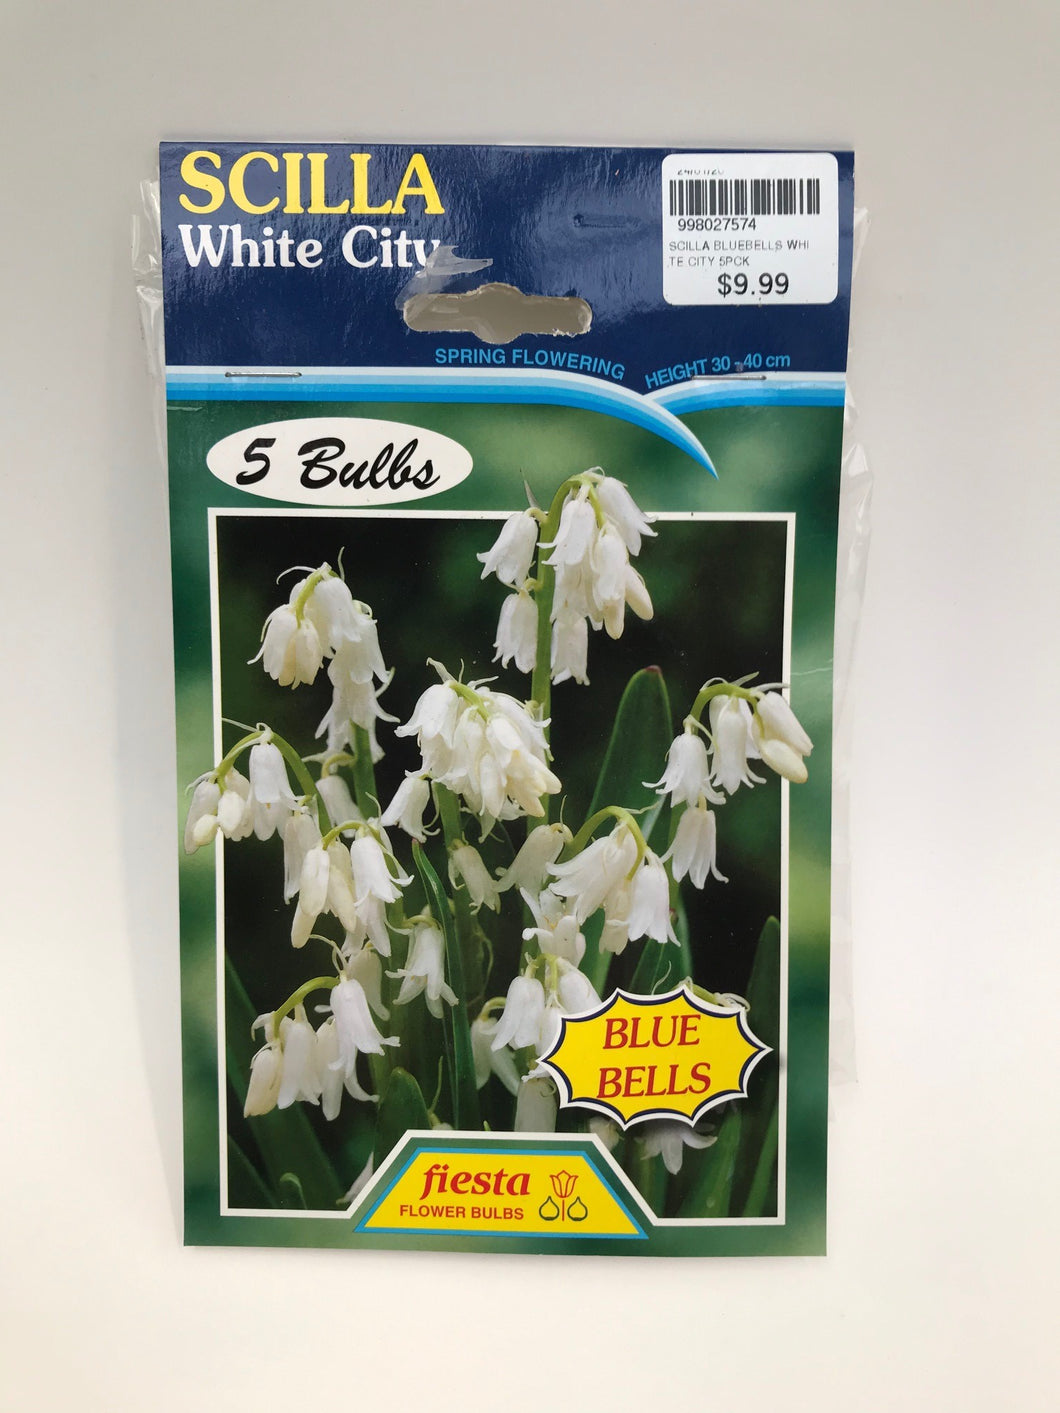 Scilla White City